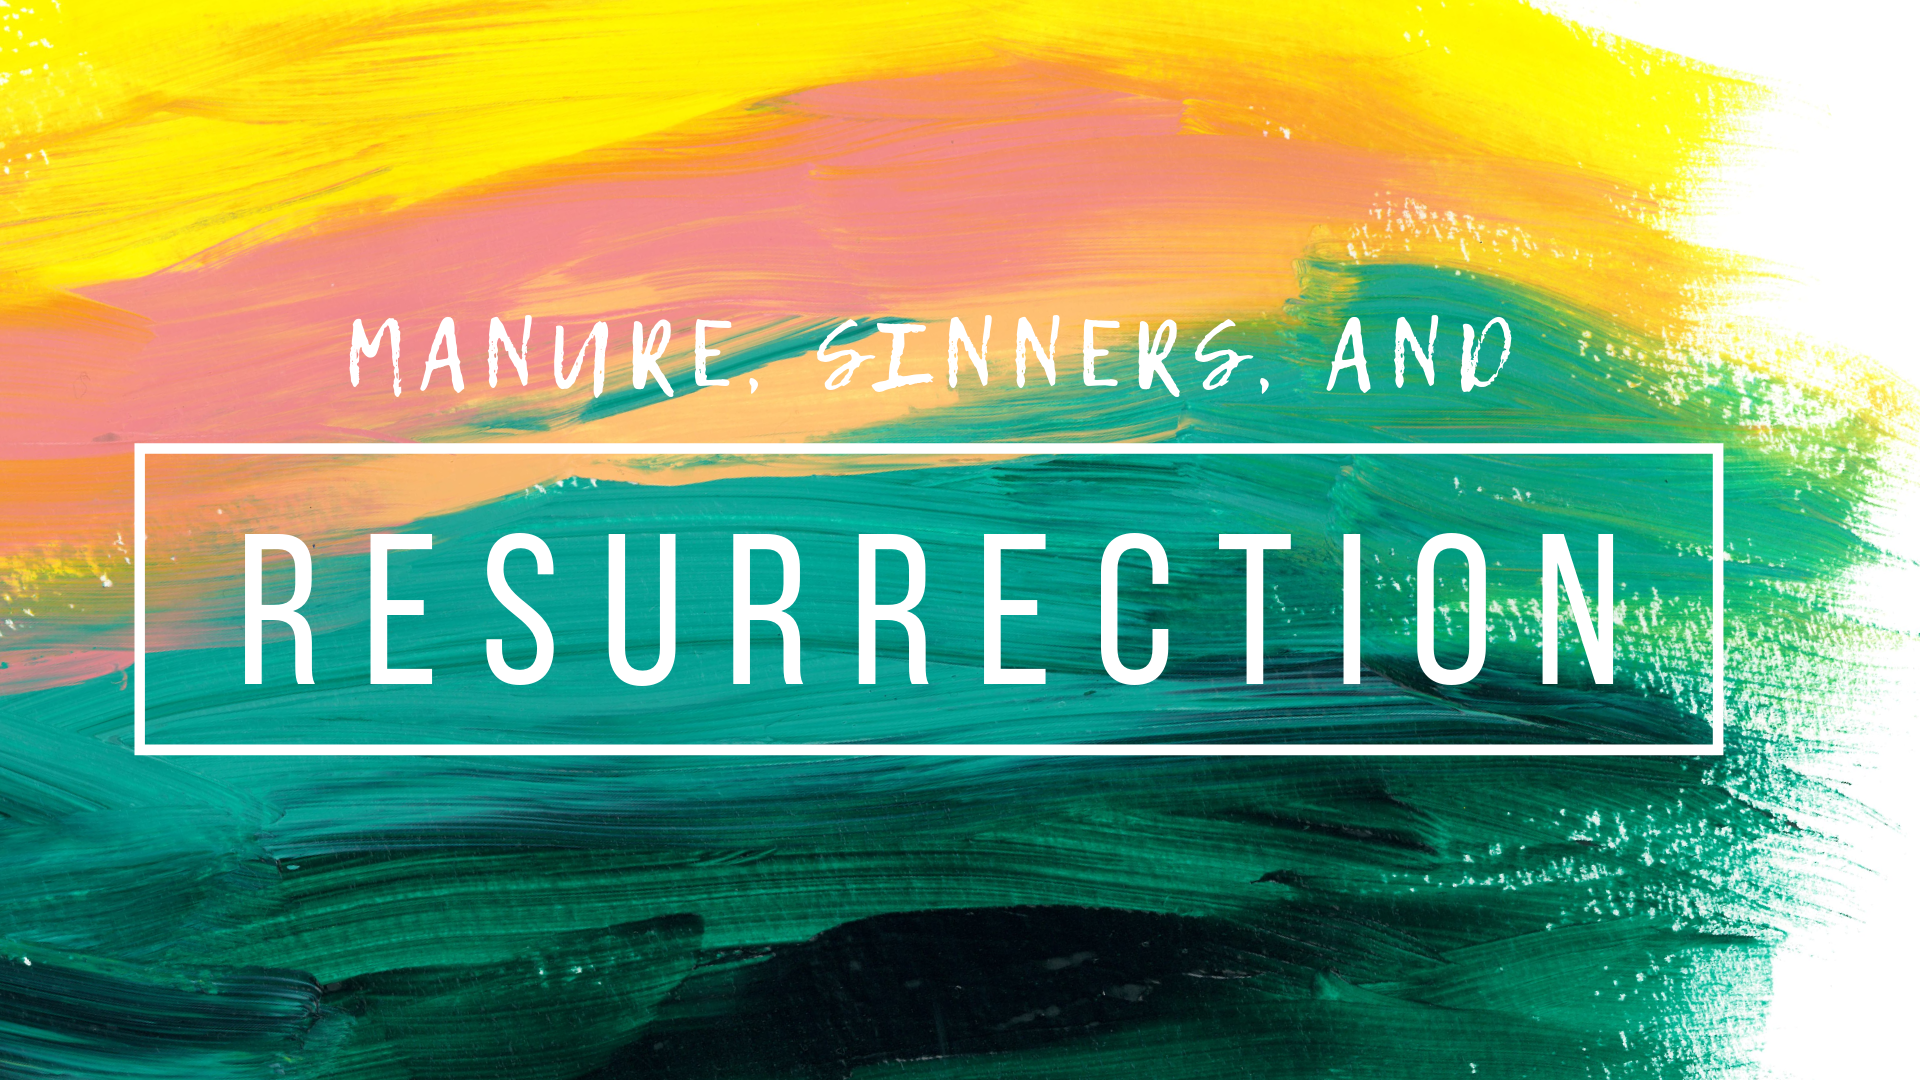 Manure, Sinners, and Resurrection